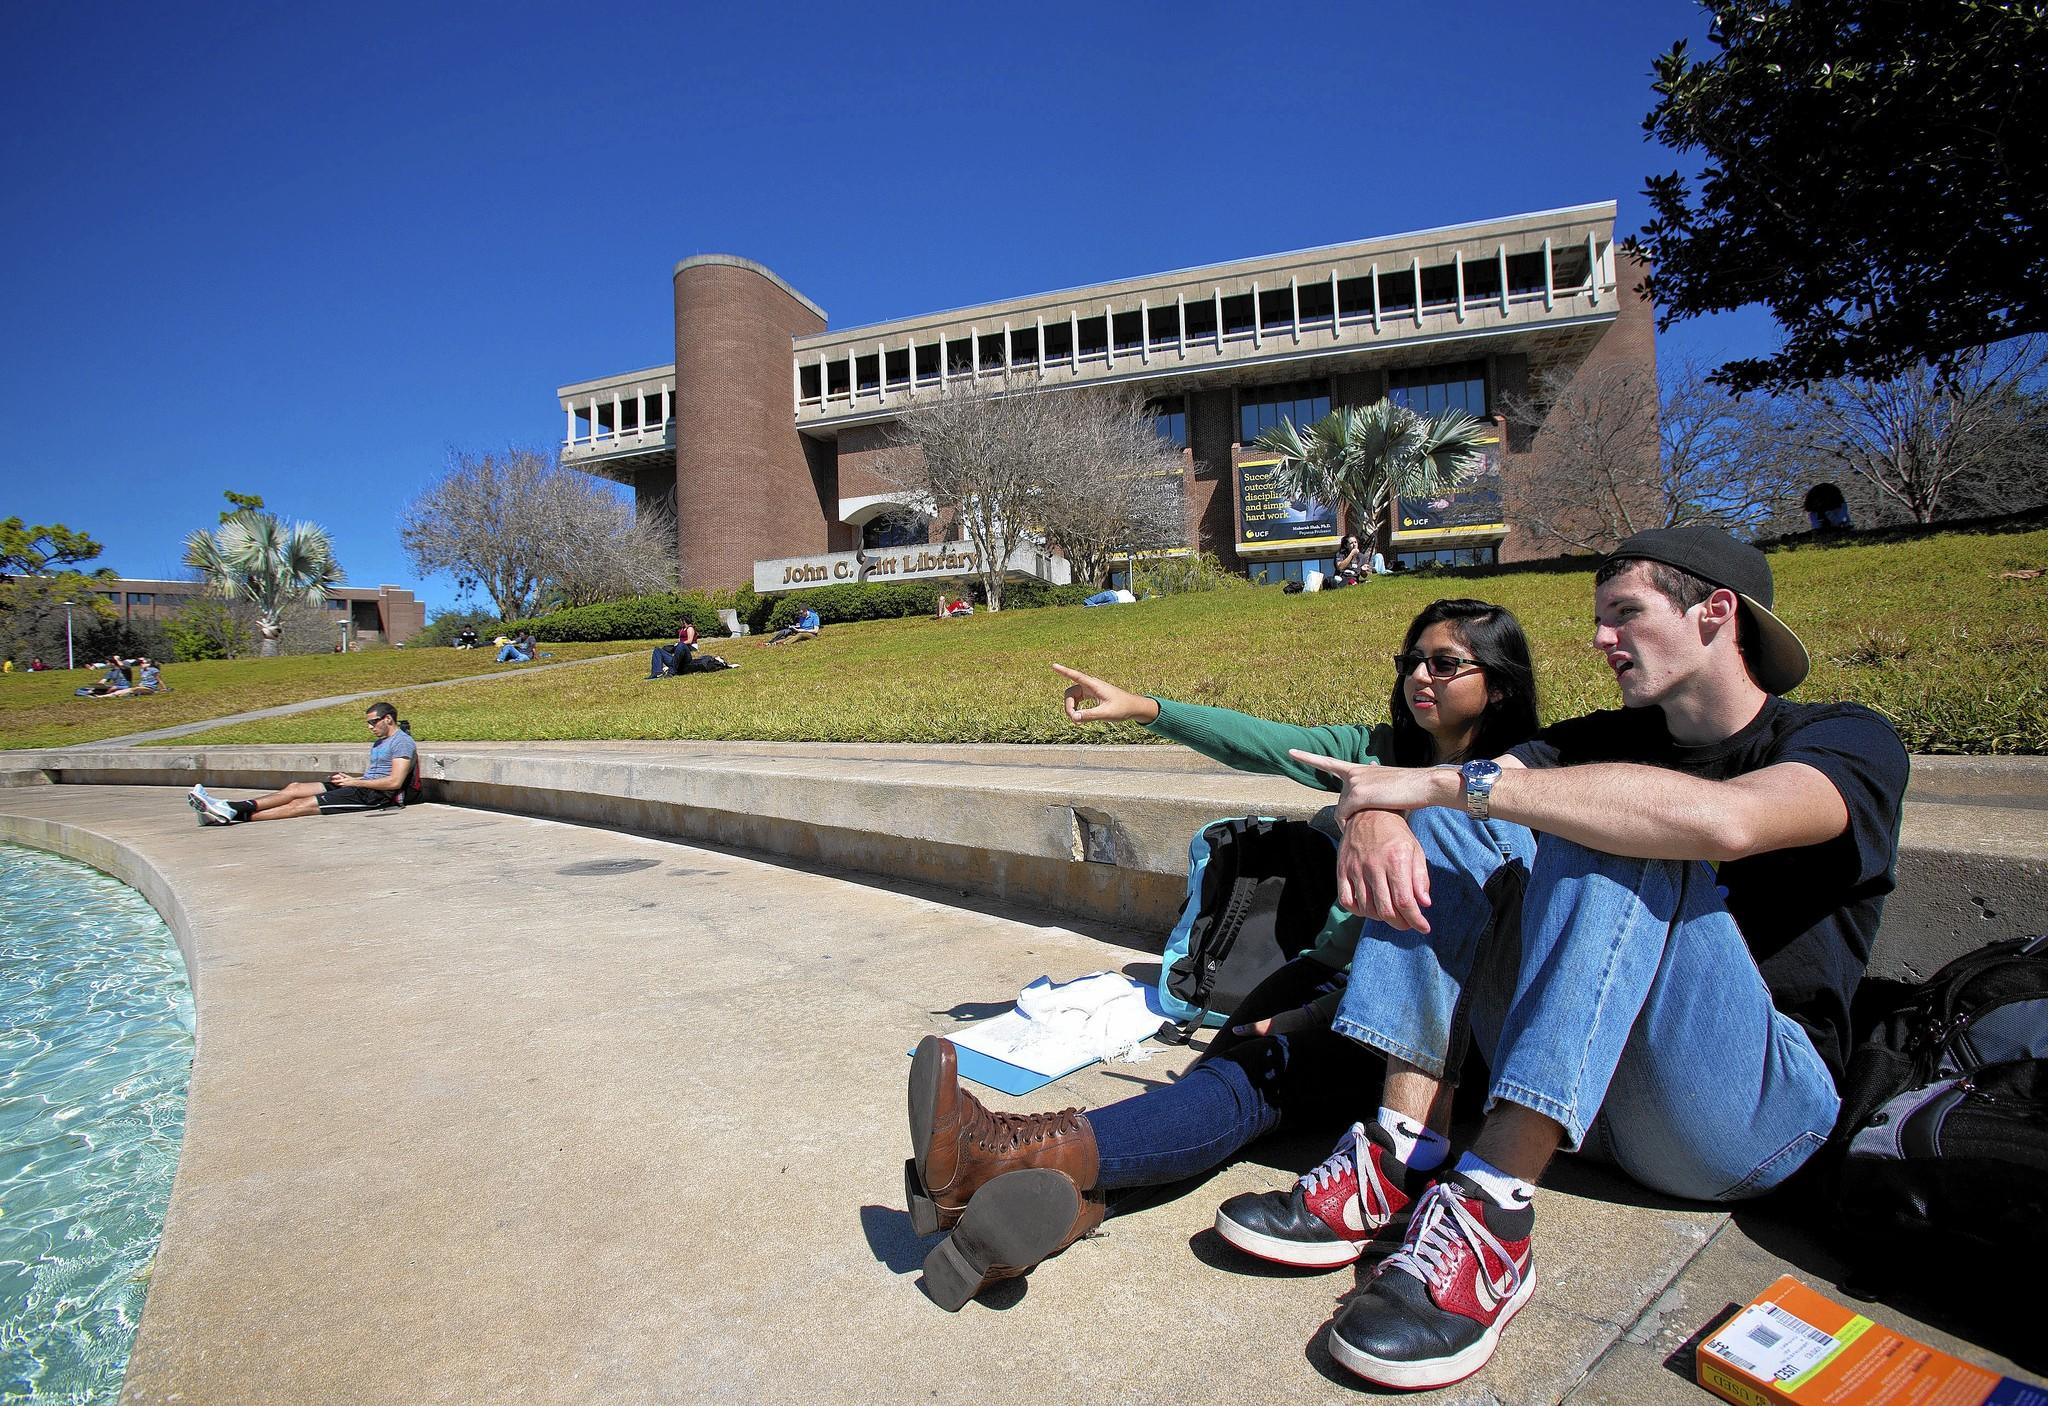 UCF students Chuck Flowers and his girlfriend Marly Santillan take advantage of the gorgeous weather while sitting by the reflecting pond on campus on Monday, February 17, 2014.